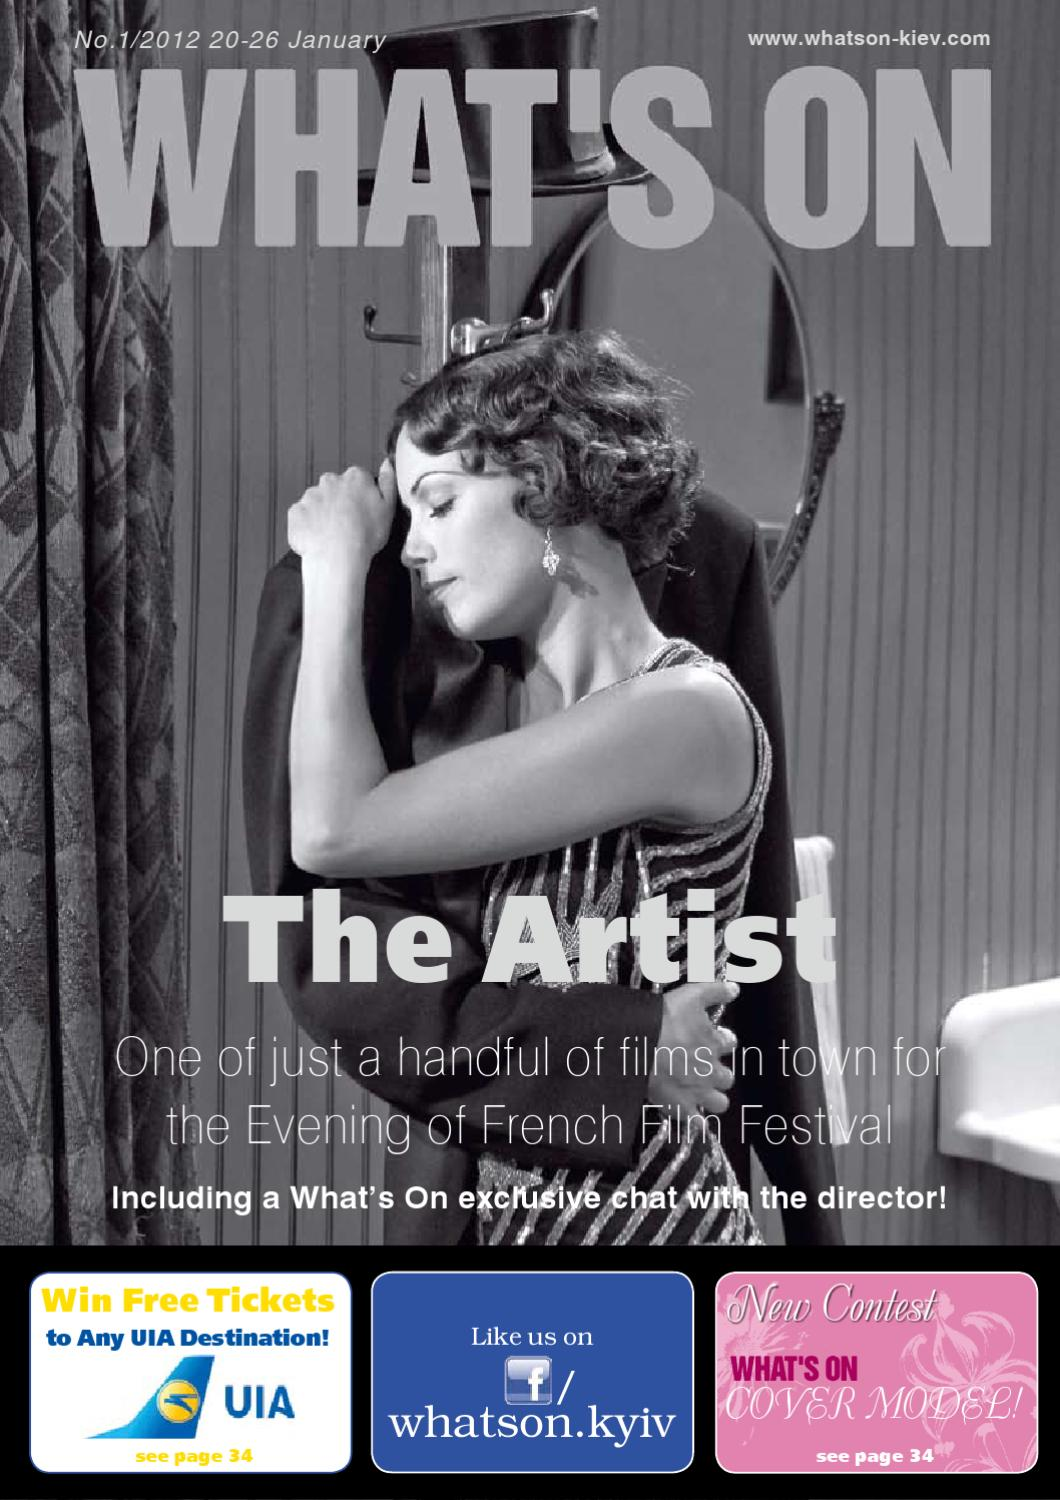 What S On Issue 1 2012 By Pan Publishing Issuu Images, Photos, Reviews